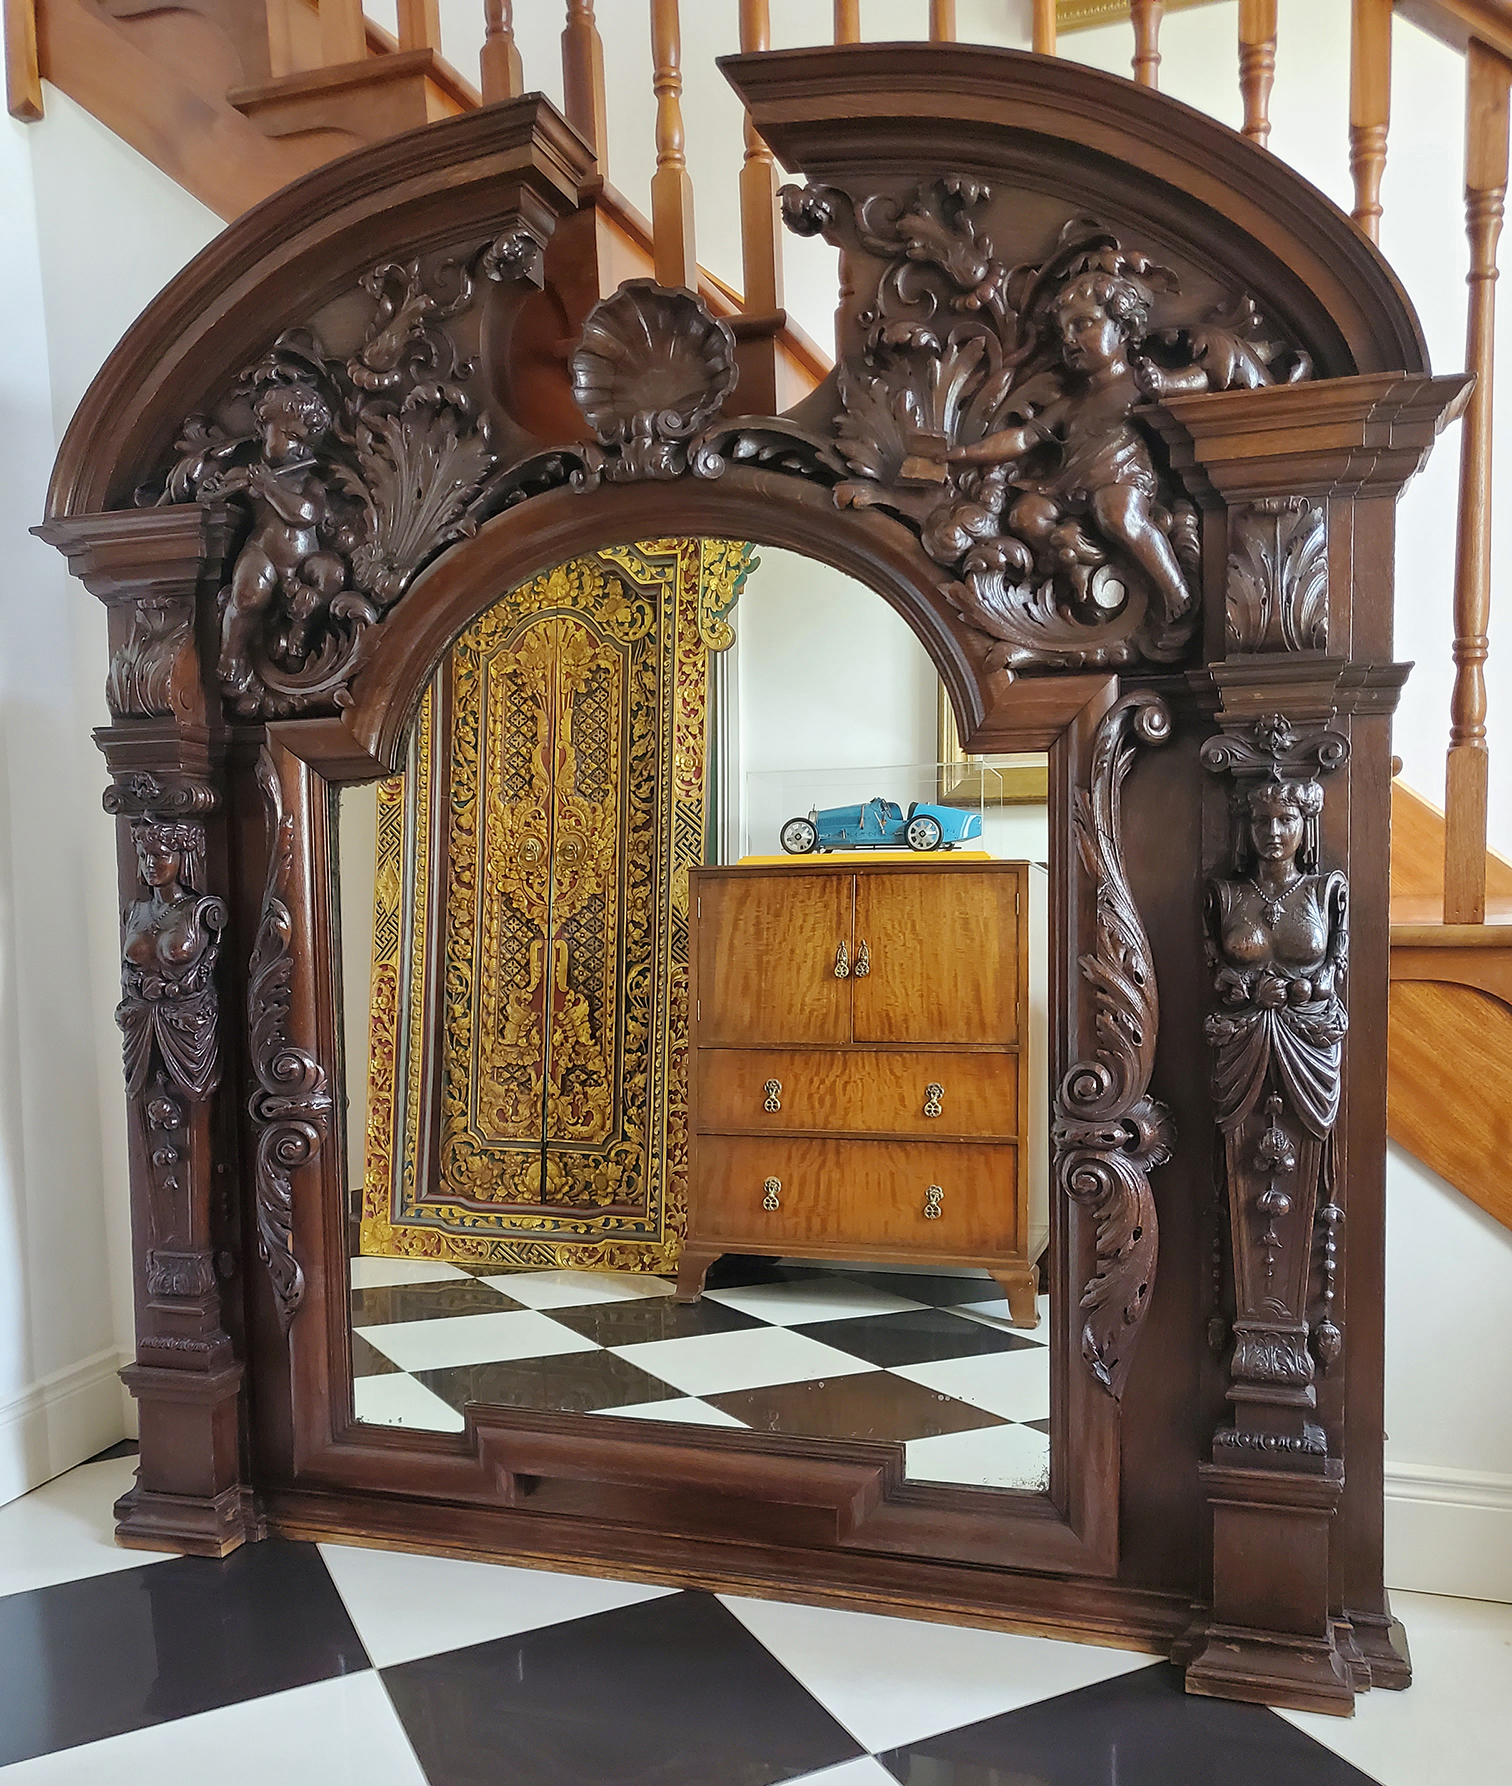 LARGE 19TH-CENTURY CARVED MIRROR